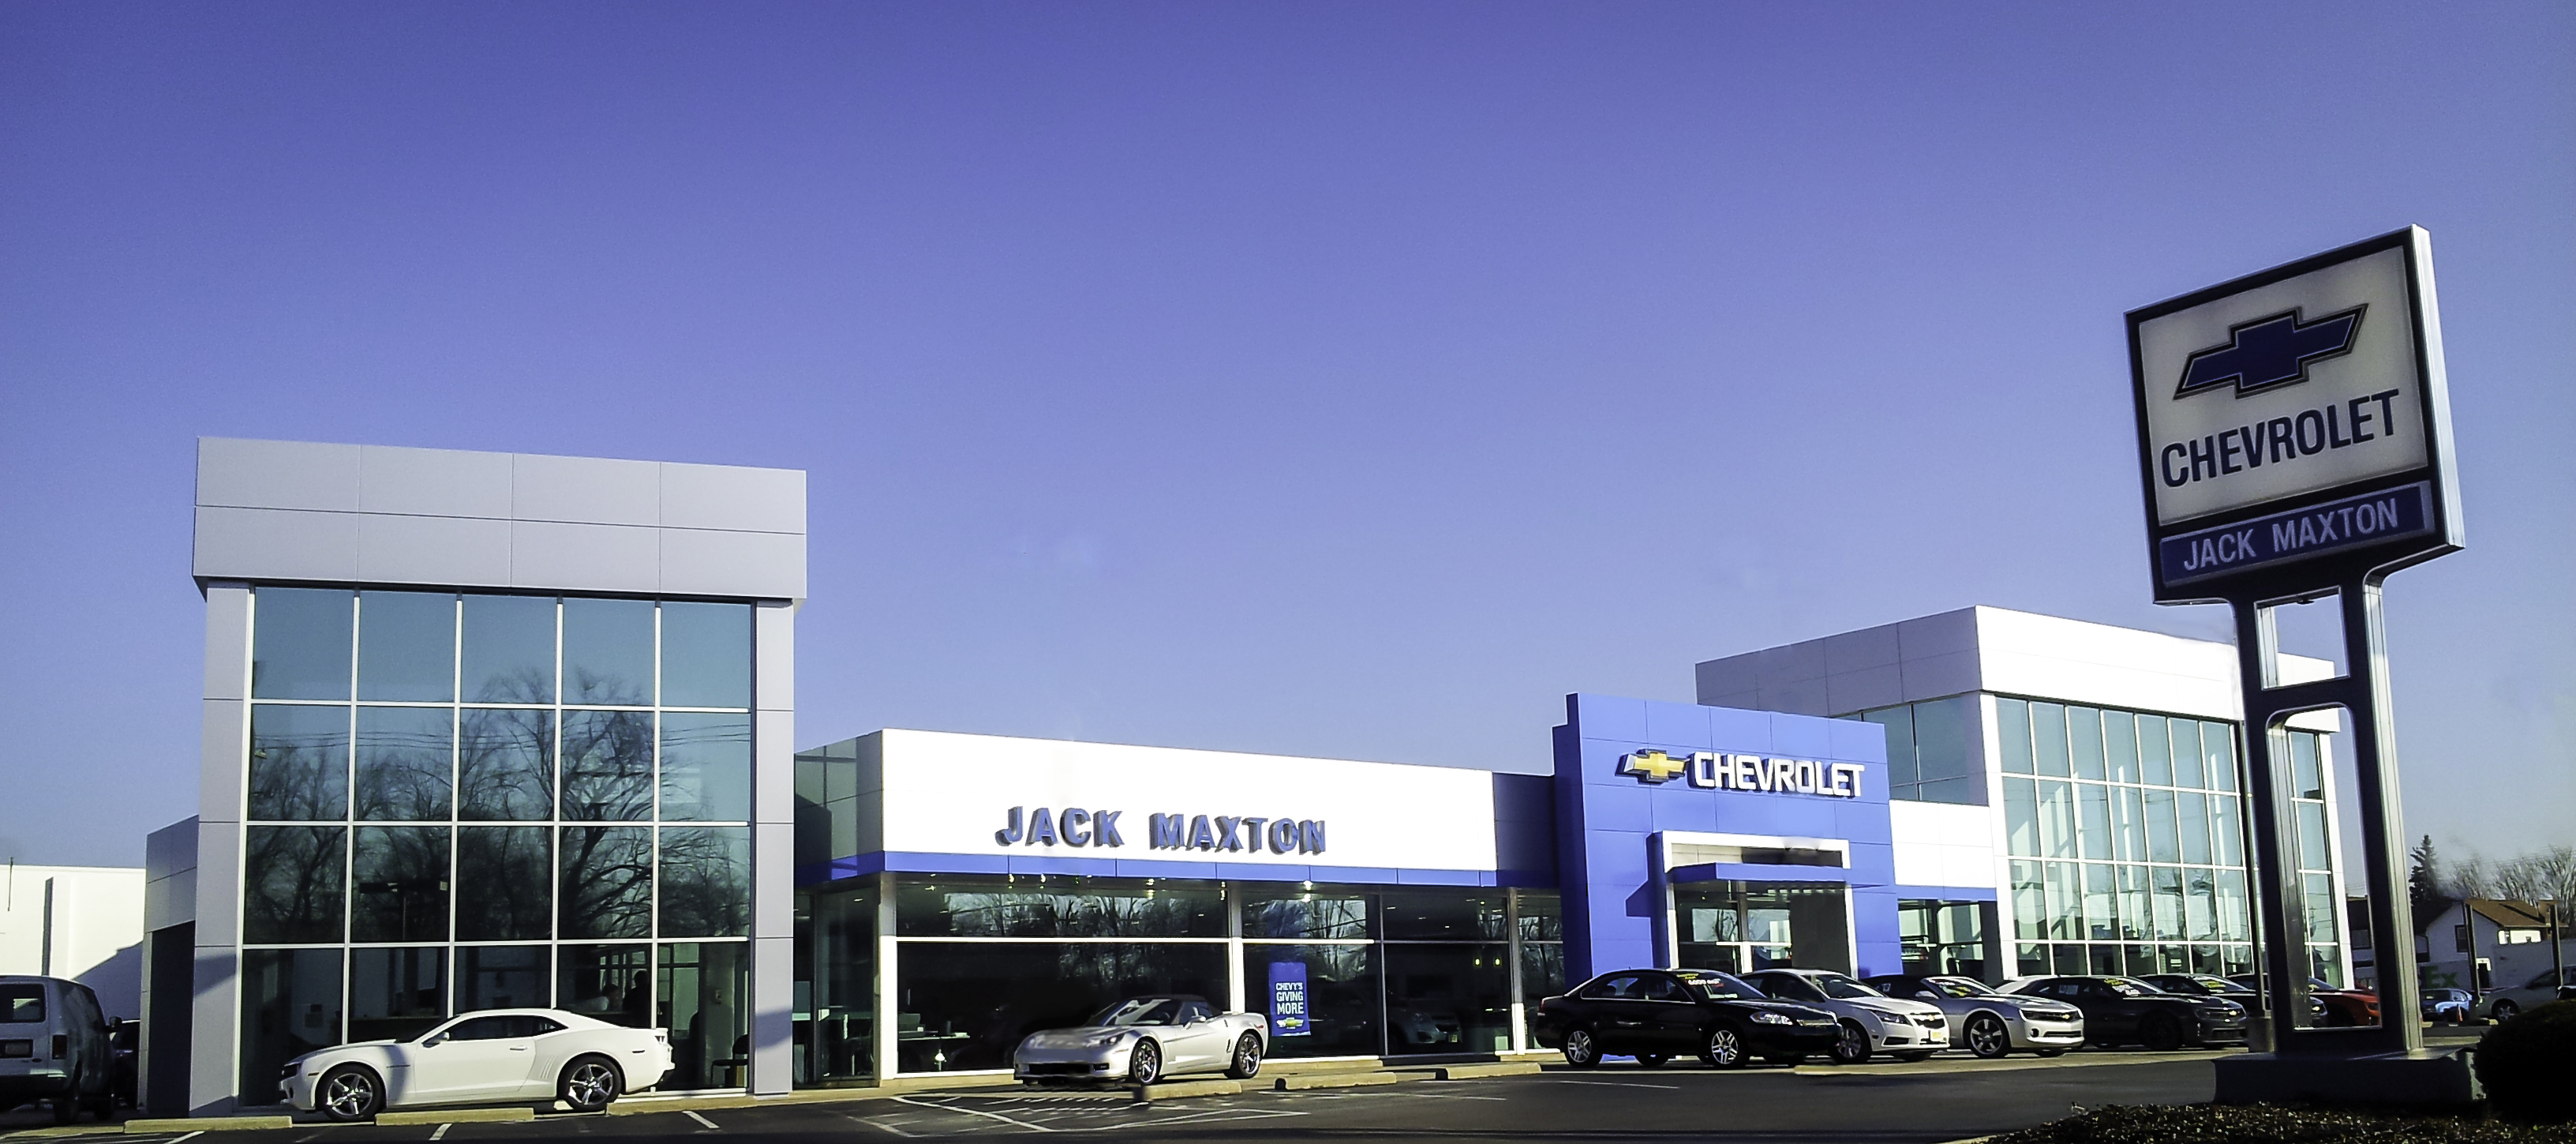 Jack Maxton Chevrolet | Home of the best